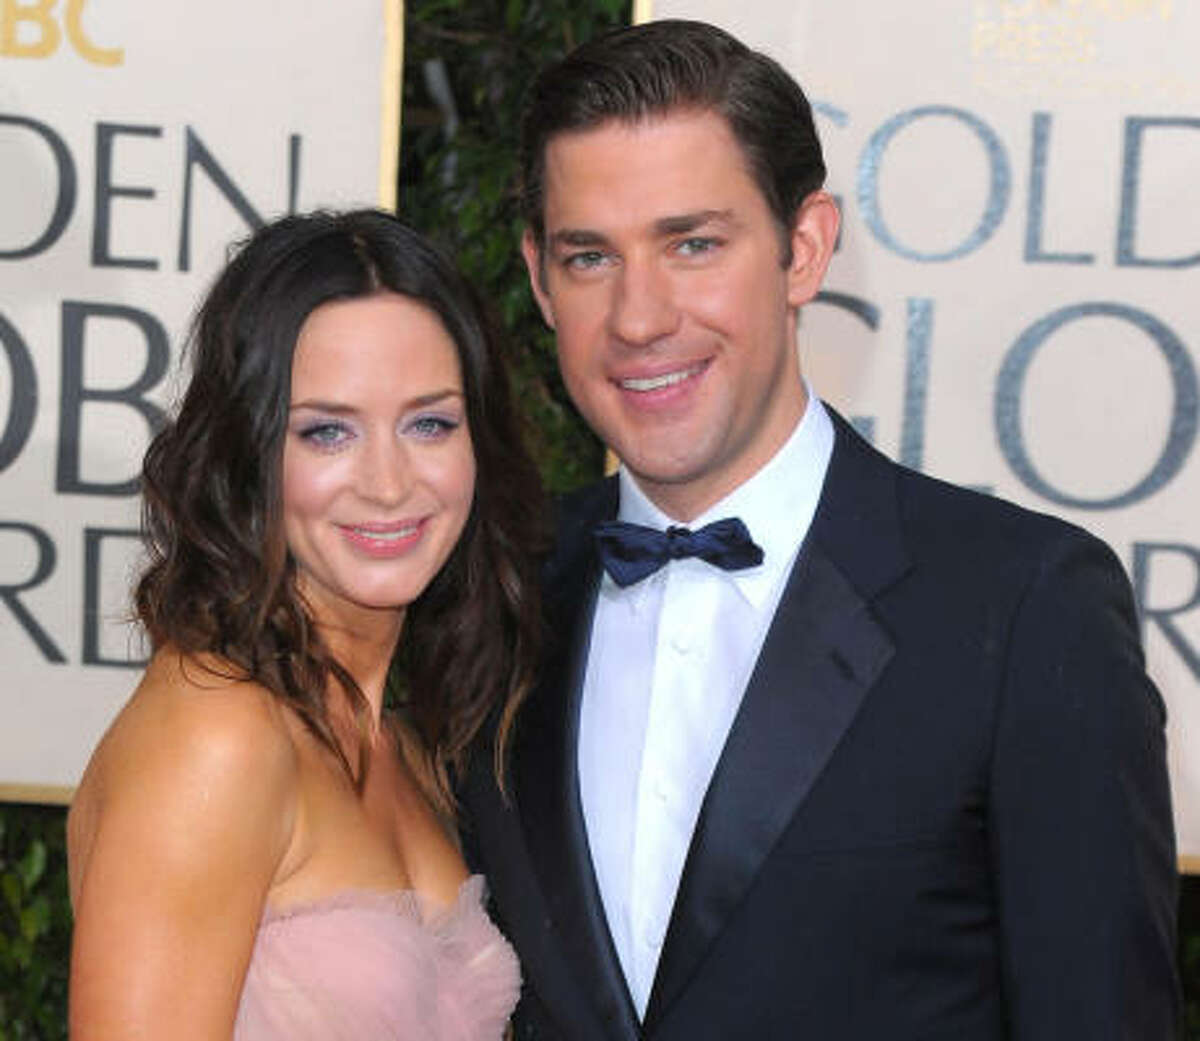 Emily Blunt and John Krasinski , best known as Jim from The Office, walked down the aisle in July.